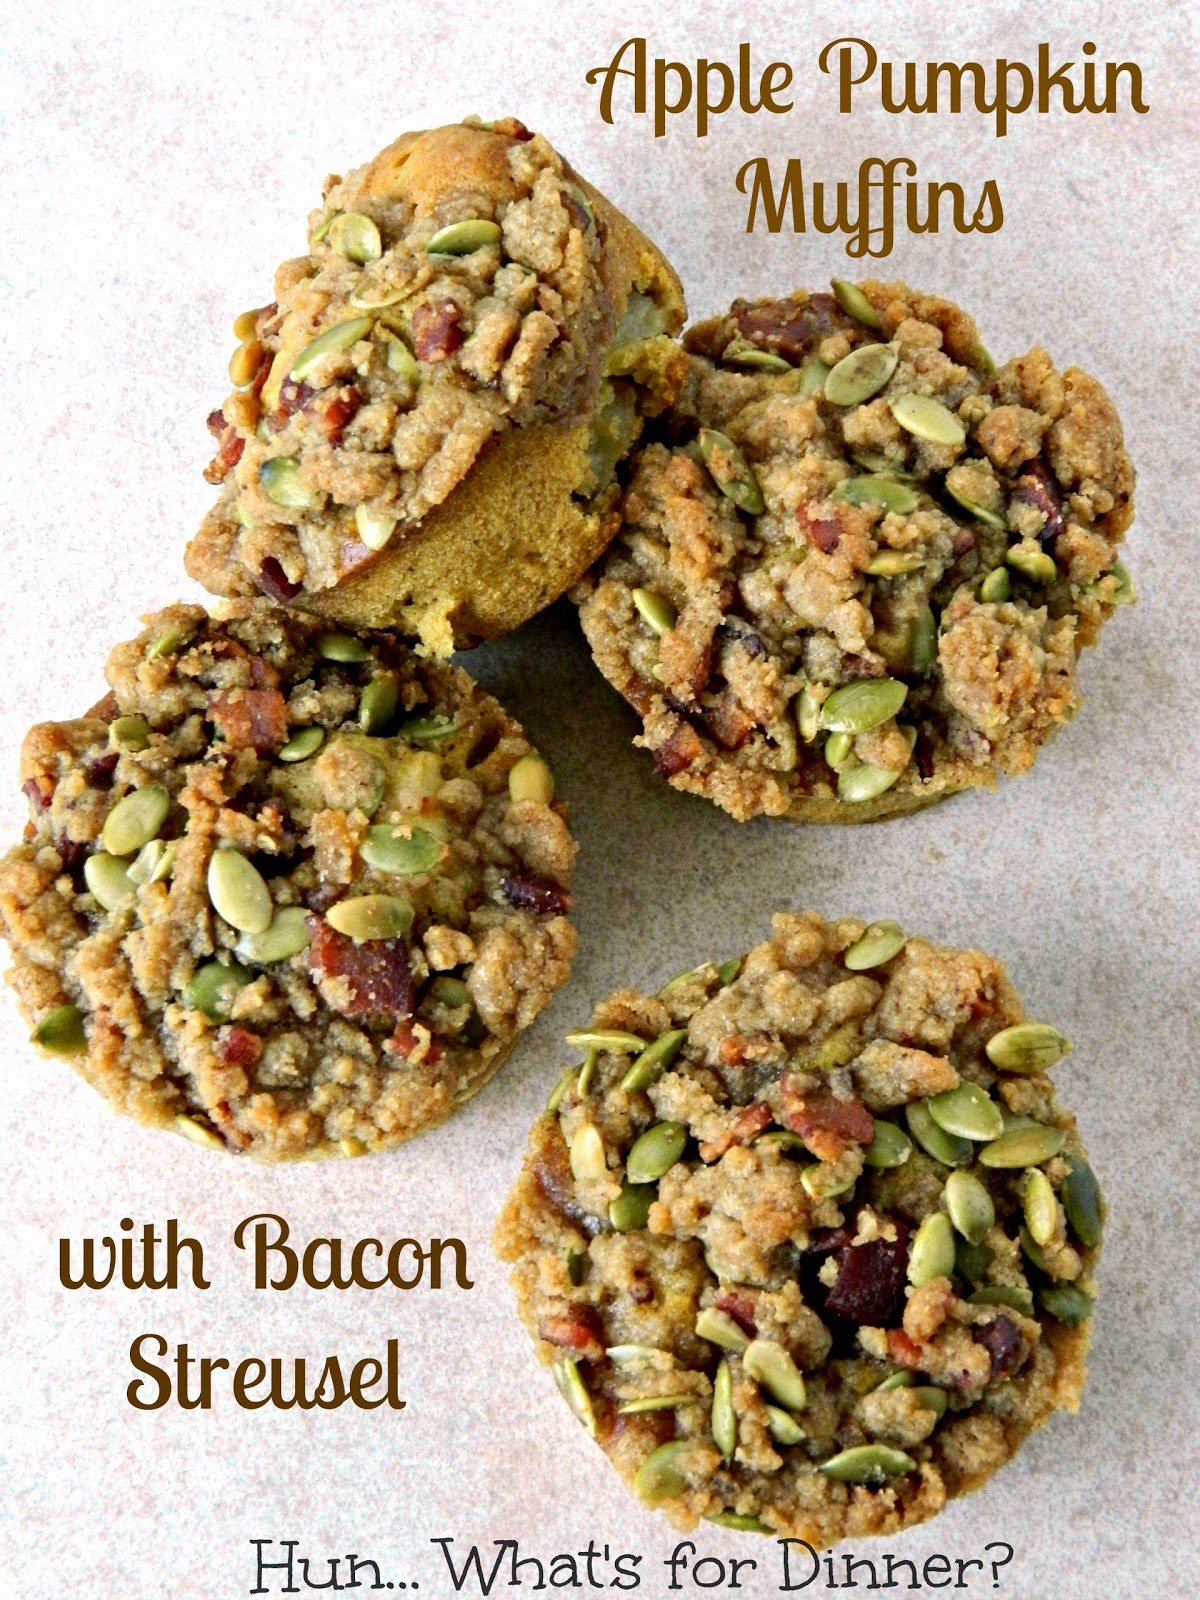 Hun... What's for Dinner? Apple Pumpkin Muffins with Bacon Streusel